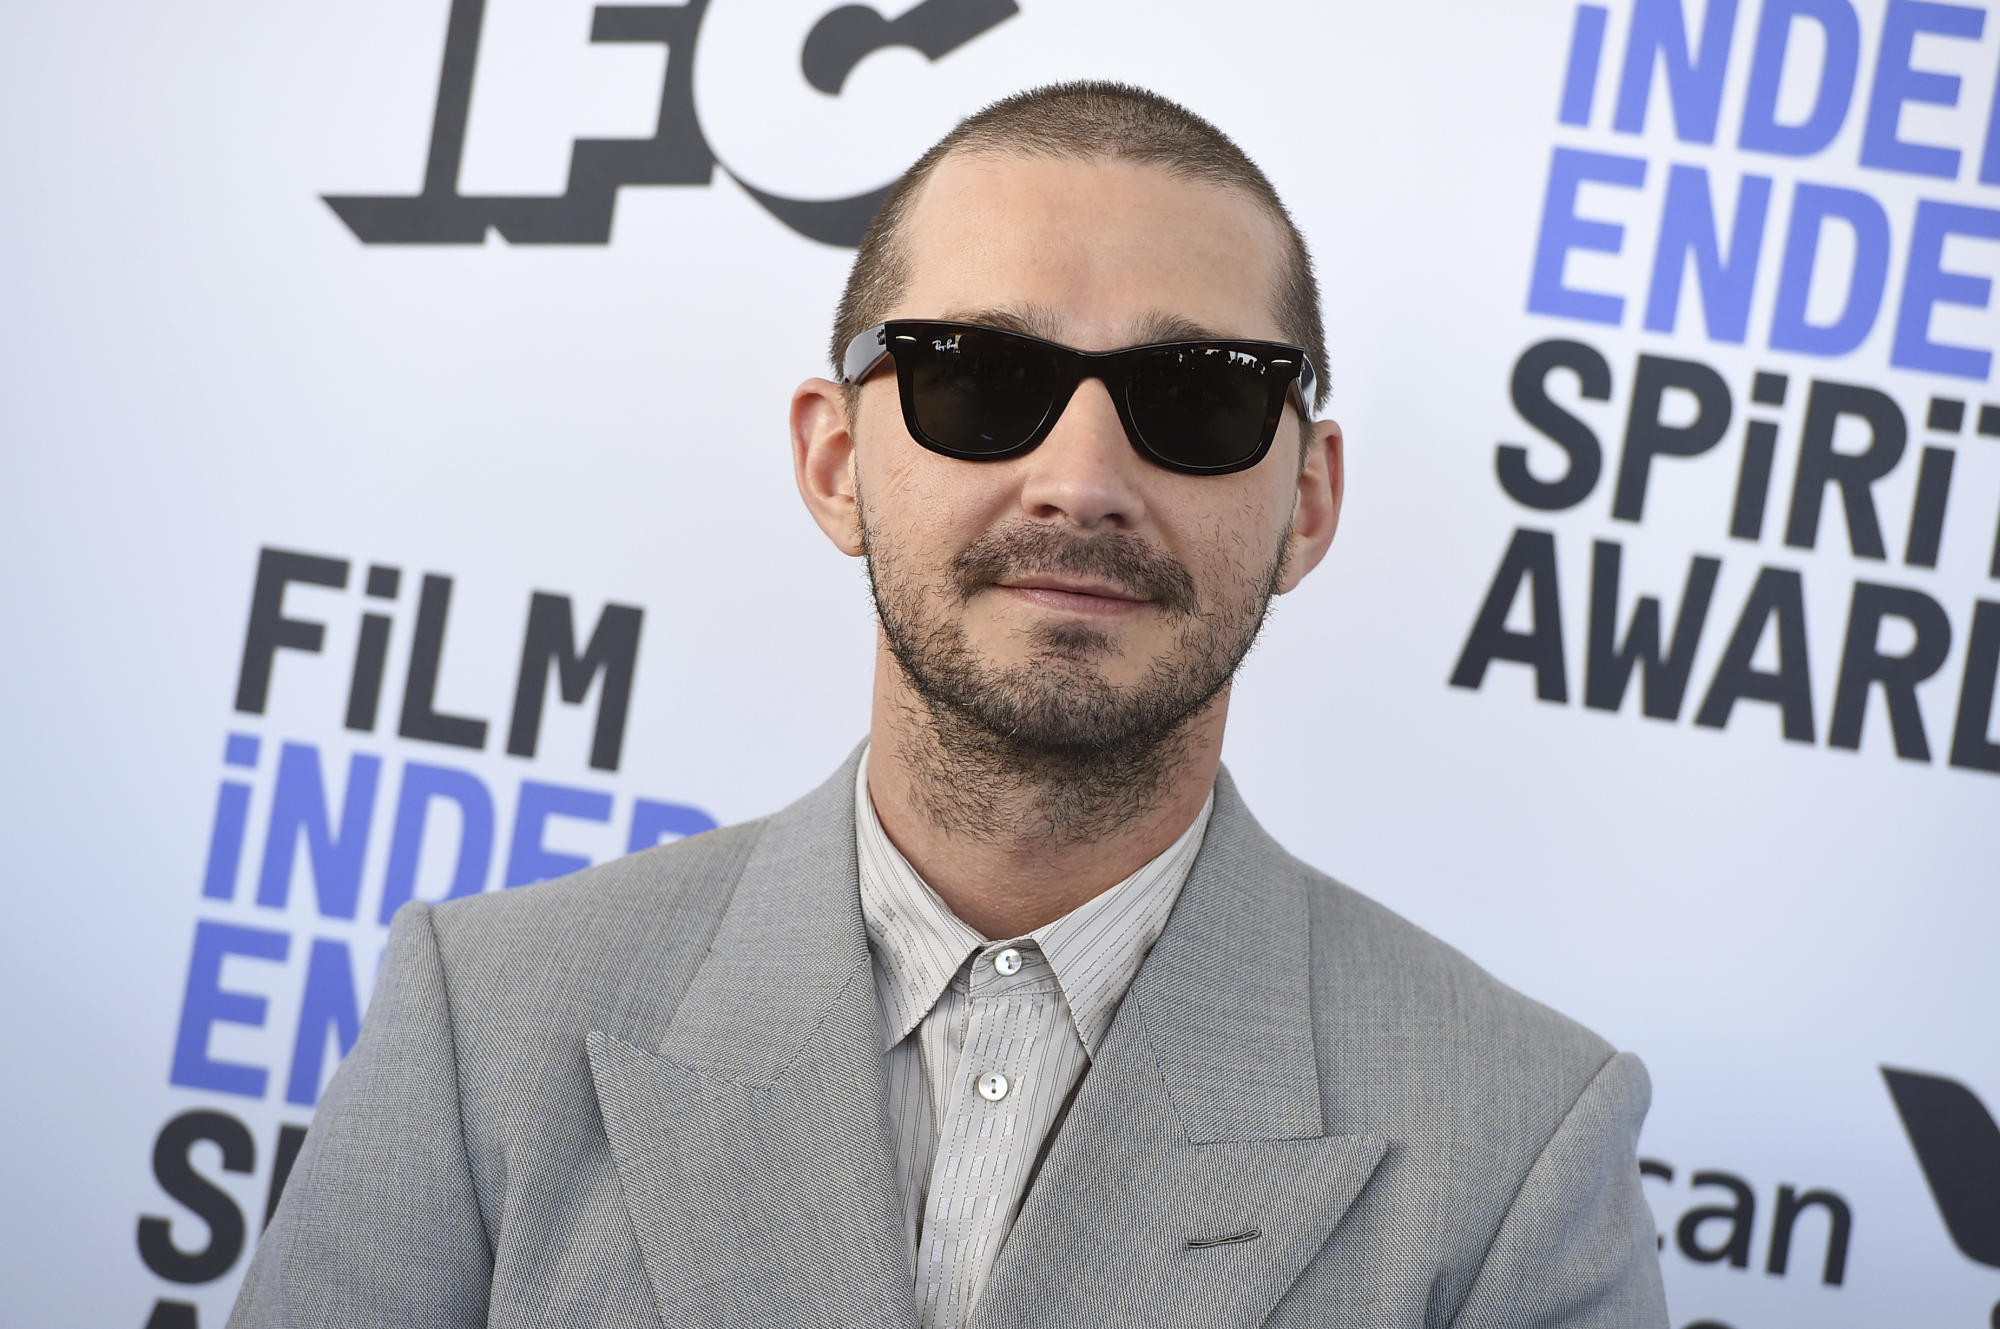 Shia Labeouf Had His Whole Chest Tattooed For New Movie The Tax Collector Check out our joshua gomez selection for the very best in unique or custom, handmade pieces from our shops. https sg style yahoo com shia la beouf chest tattooed for new role 100935868 html